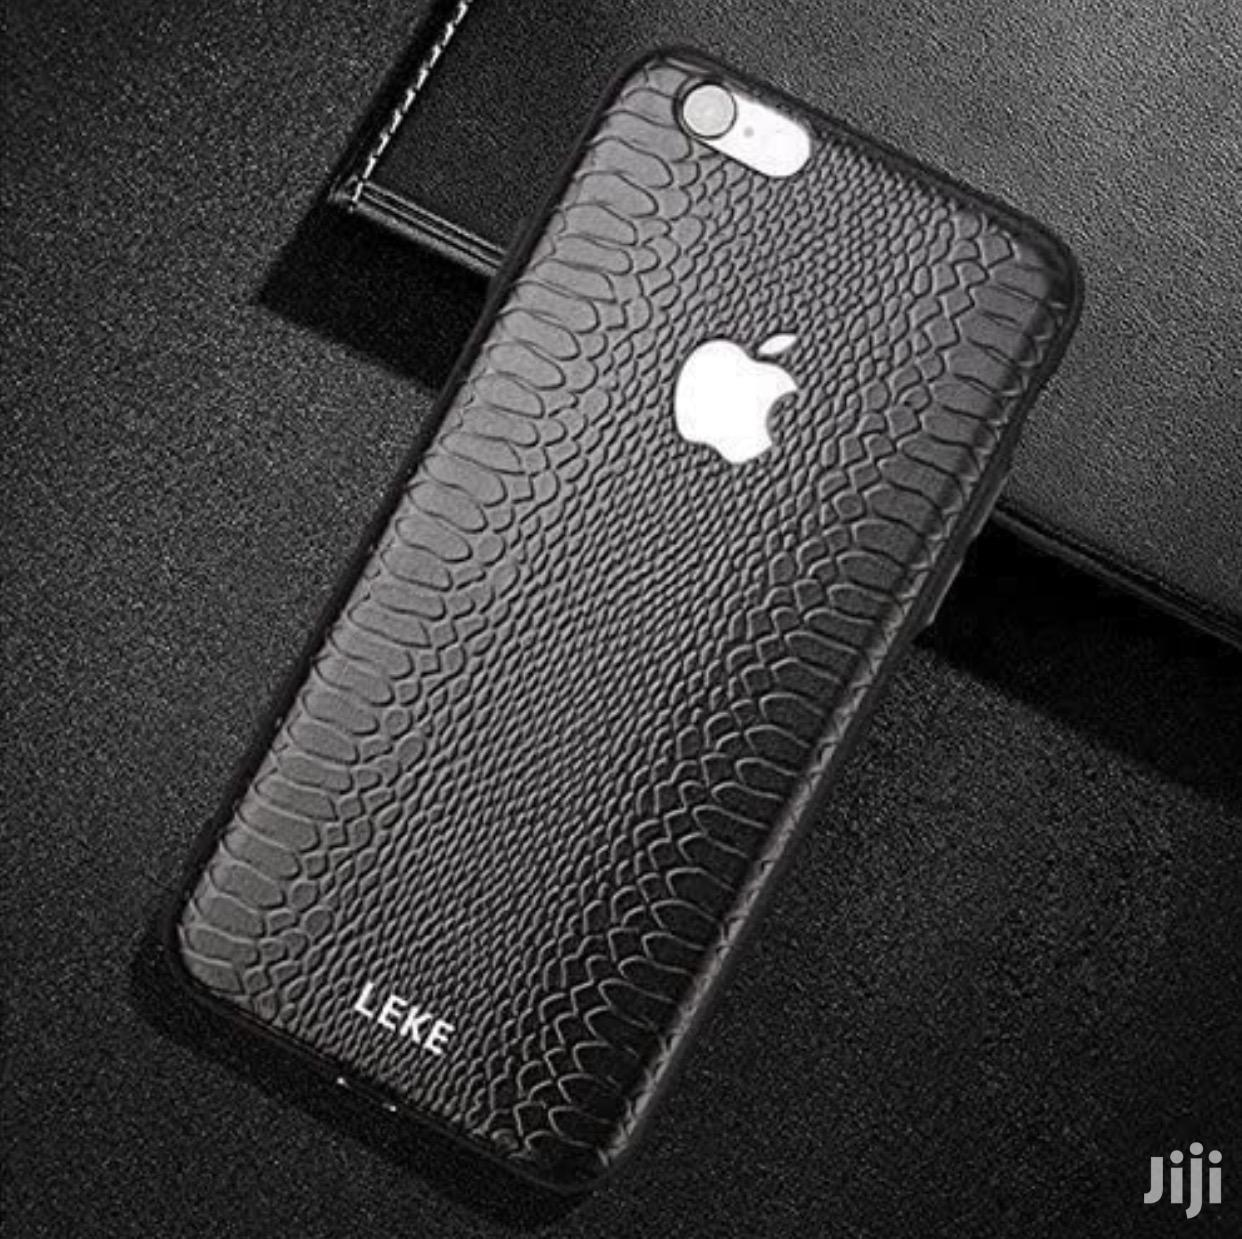 Leke Luminous Apple Logo Glow Case 4 iPhone Xs X 8p 7p 8 7 6 | Accessories for Mobile Phones & Tablets for sale in Ga South Municipal, Greater Accra, Ghana